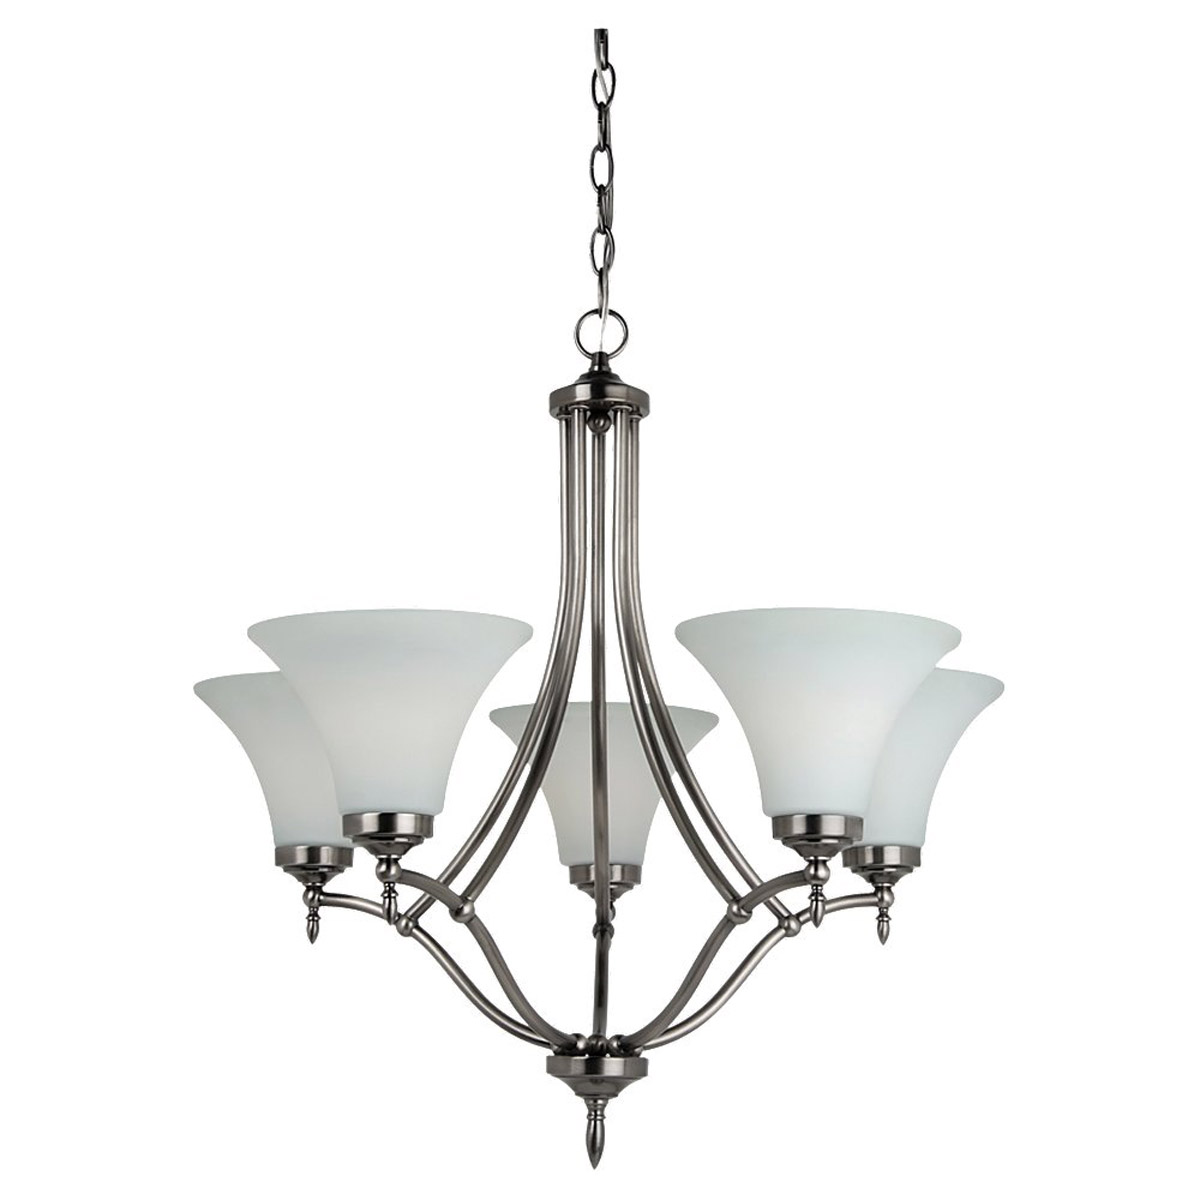 Sea Gull Lighting Montreal 5 Light Chandelier in Antique Brushed Nickel 31181-965